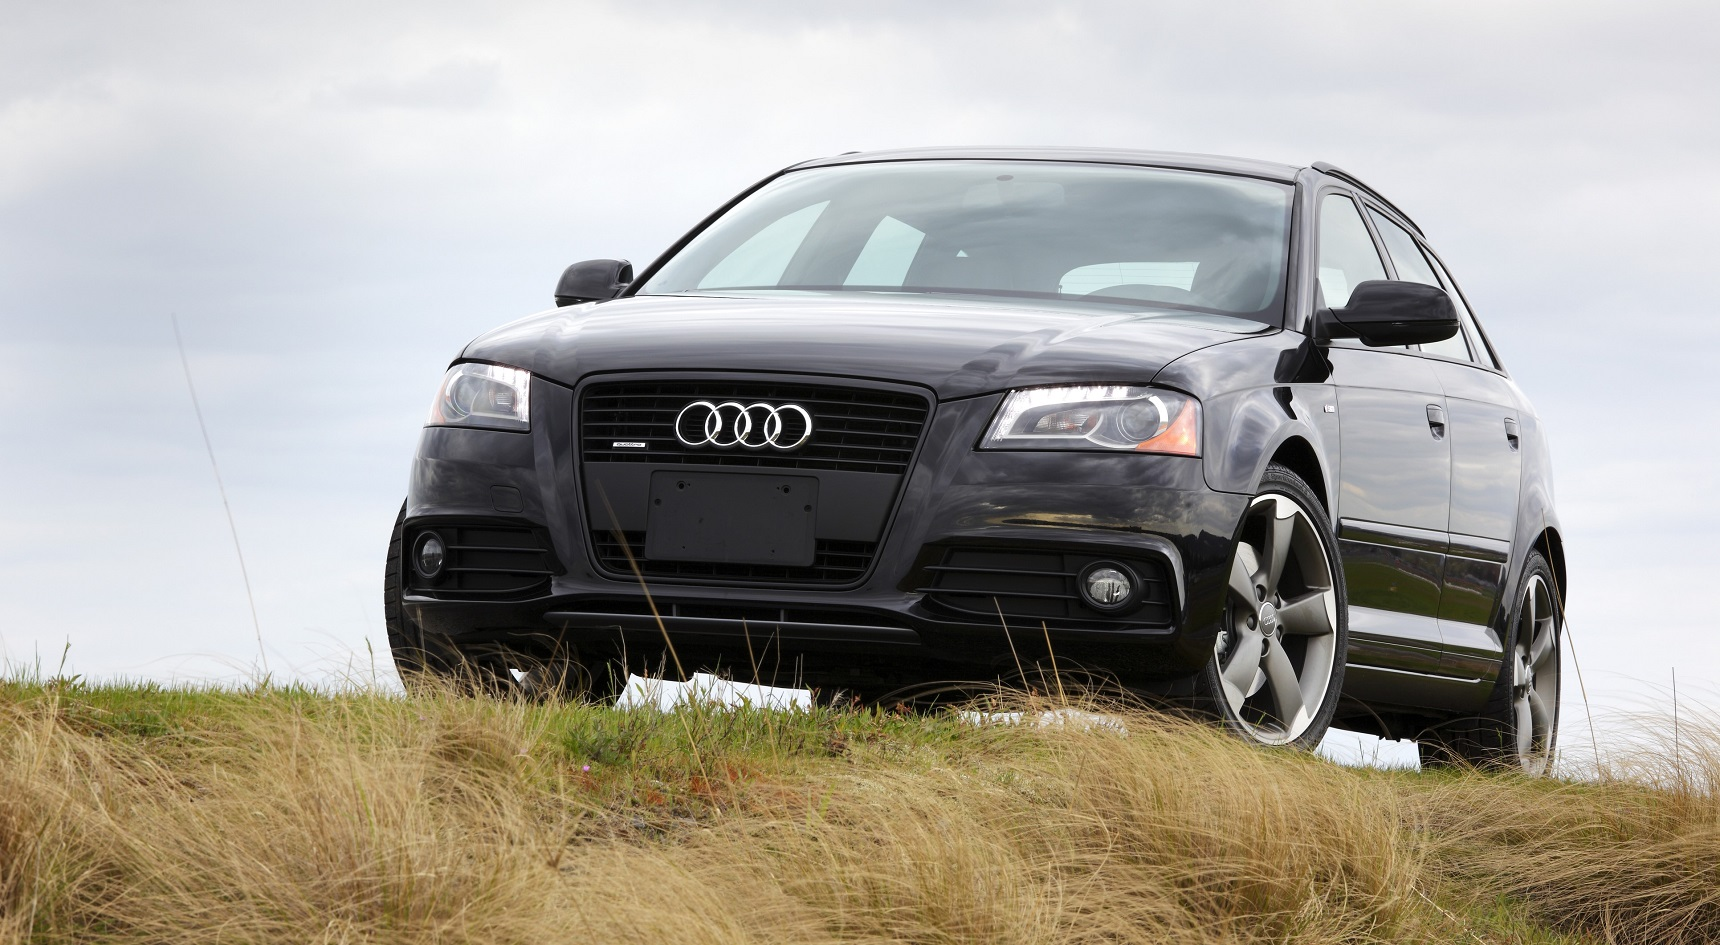 The second-generation Audi A3. Image: iStock